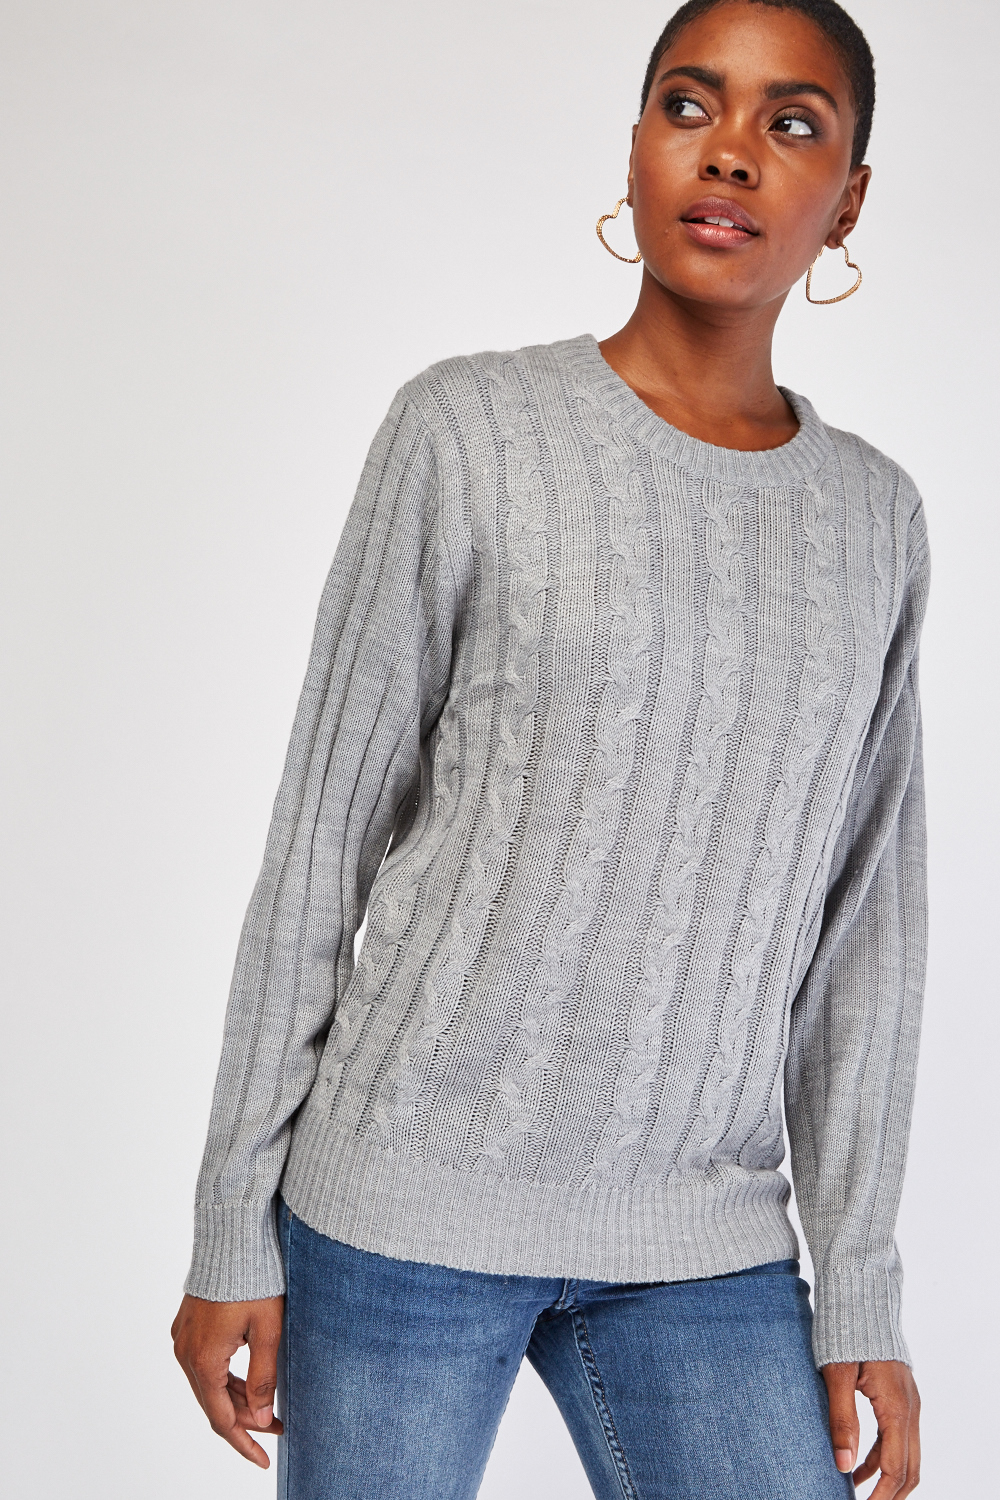 distinctive style new authentic beautiful and charming Cable Knit Long Sleeve Chunky Jumper - Just £5